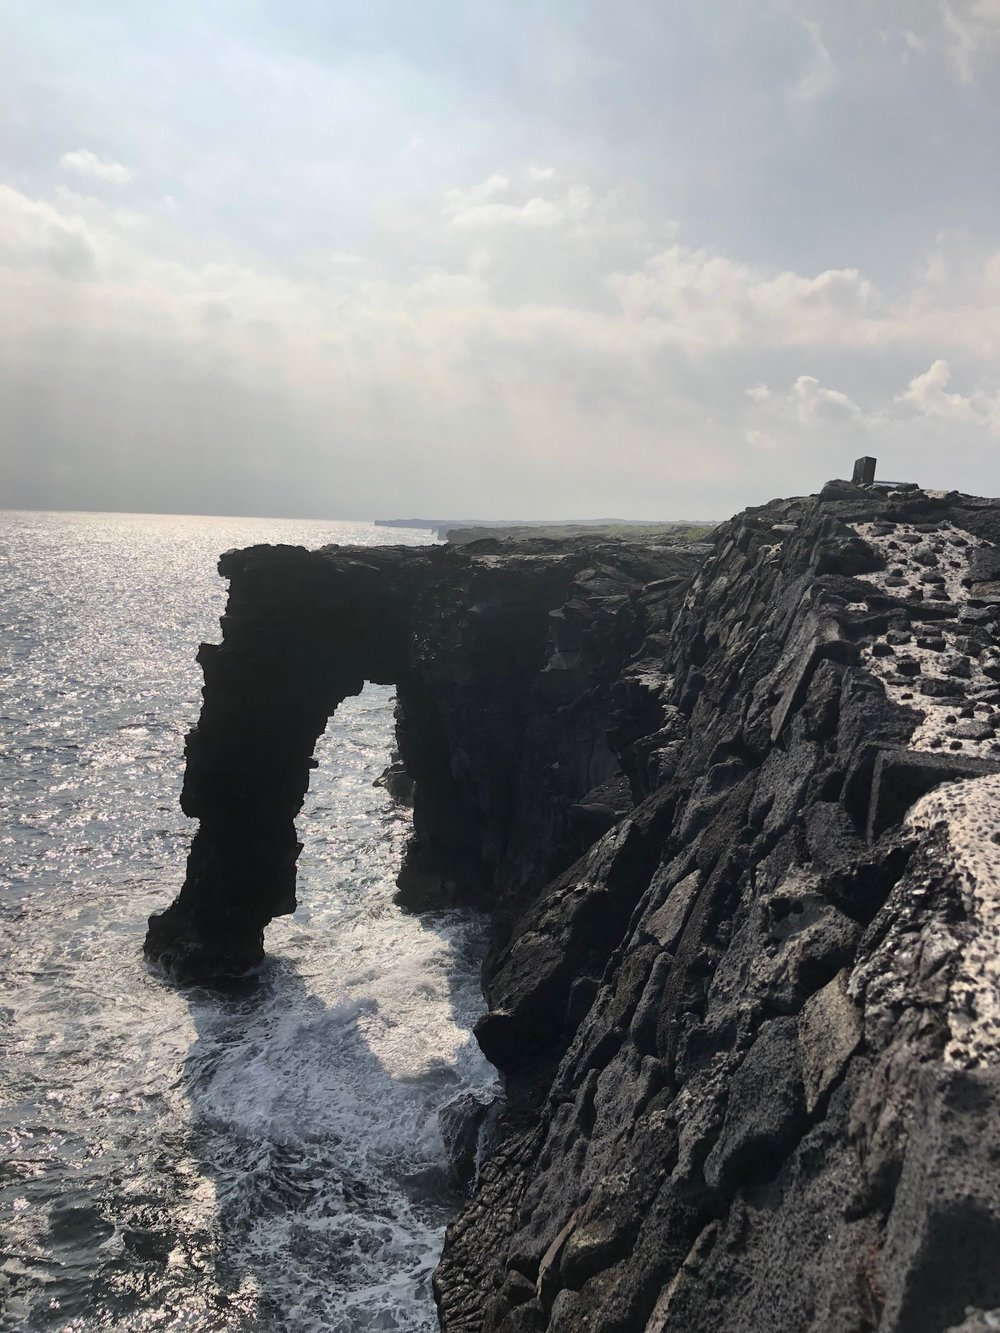 view from above of the Hōlei Sea Arch at Hawaii's Volcanos National Park.